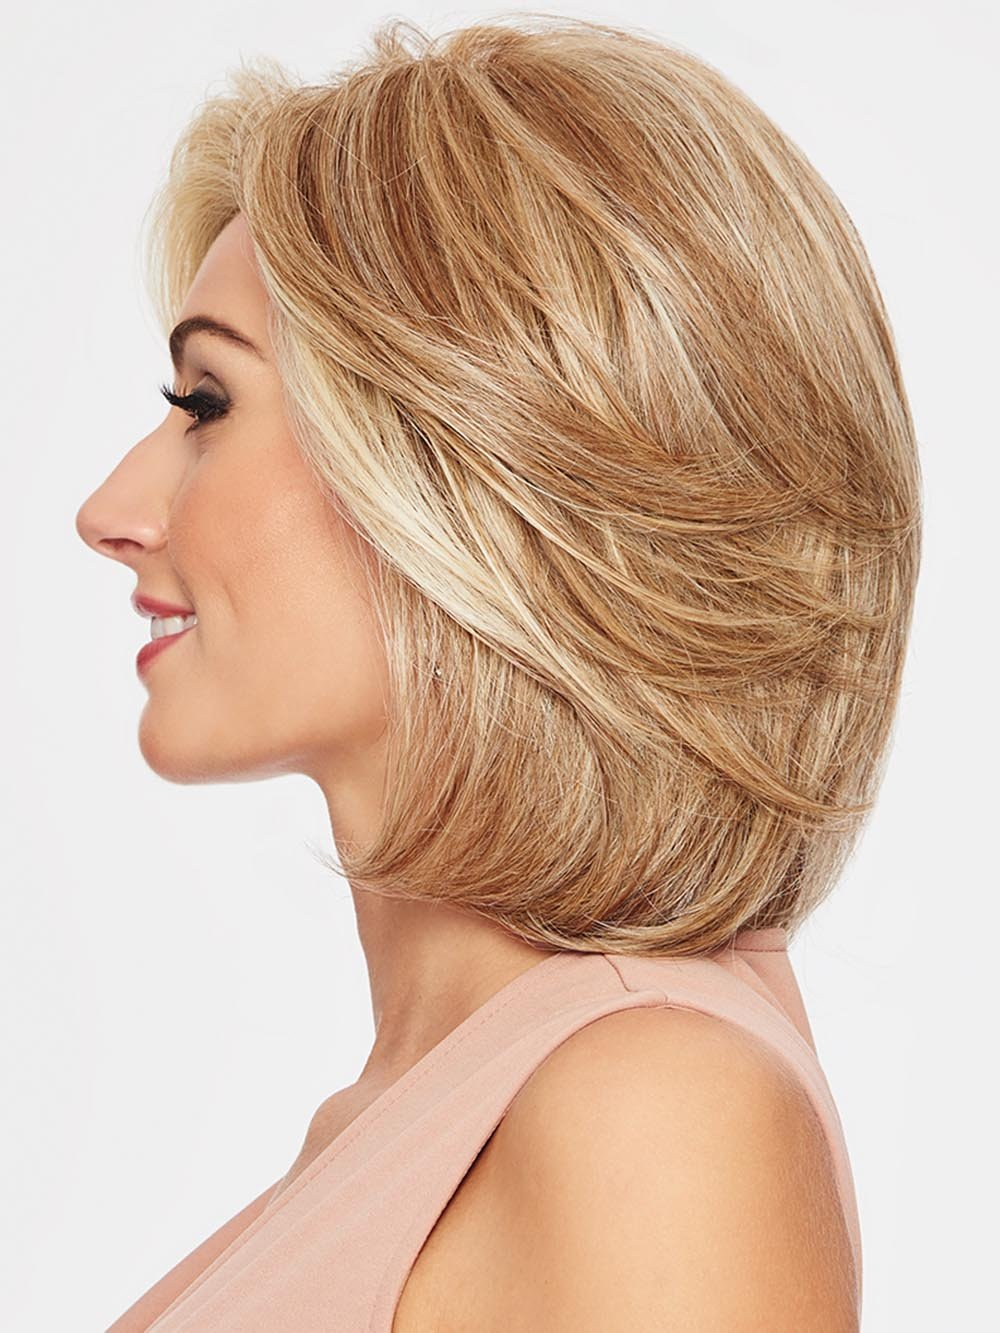 UPSTAGE LARGE by RAQUEL WELCH in RL16/88 PALE GOLDEN HONEY | Dark Natural Blonde Evenly Blended with Pale Golden Blonde